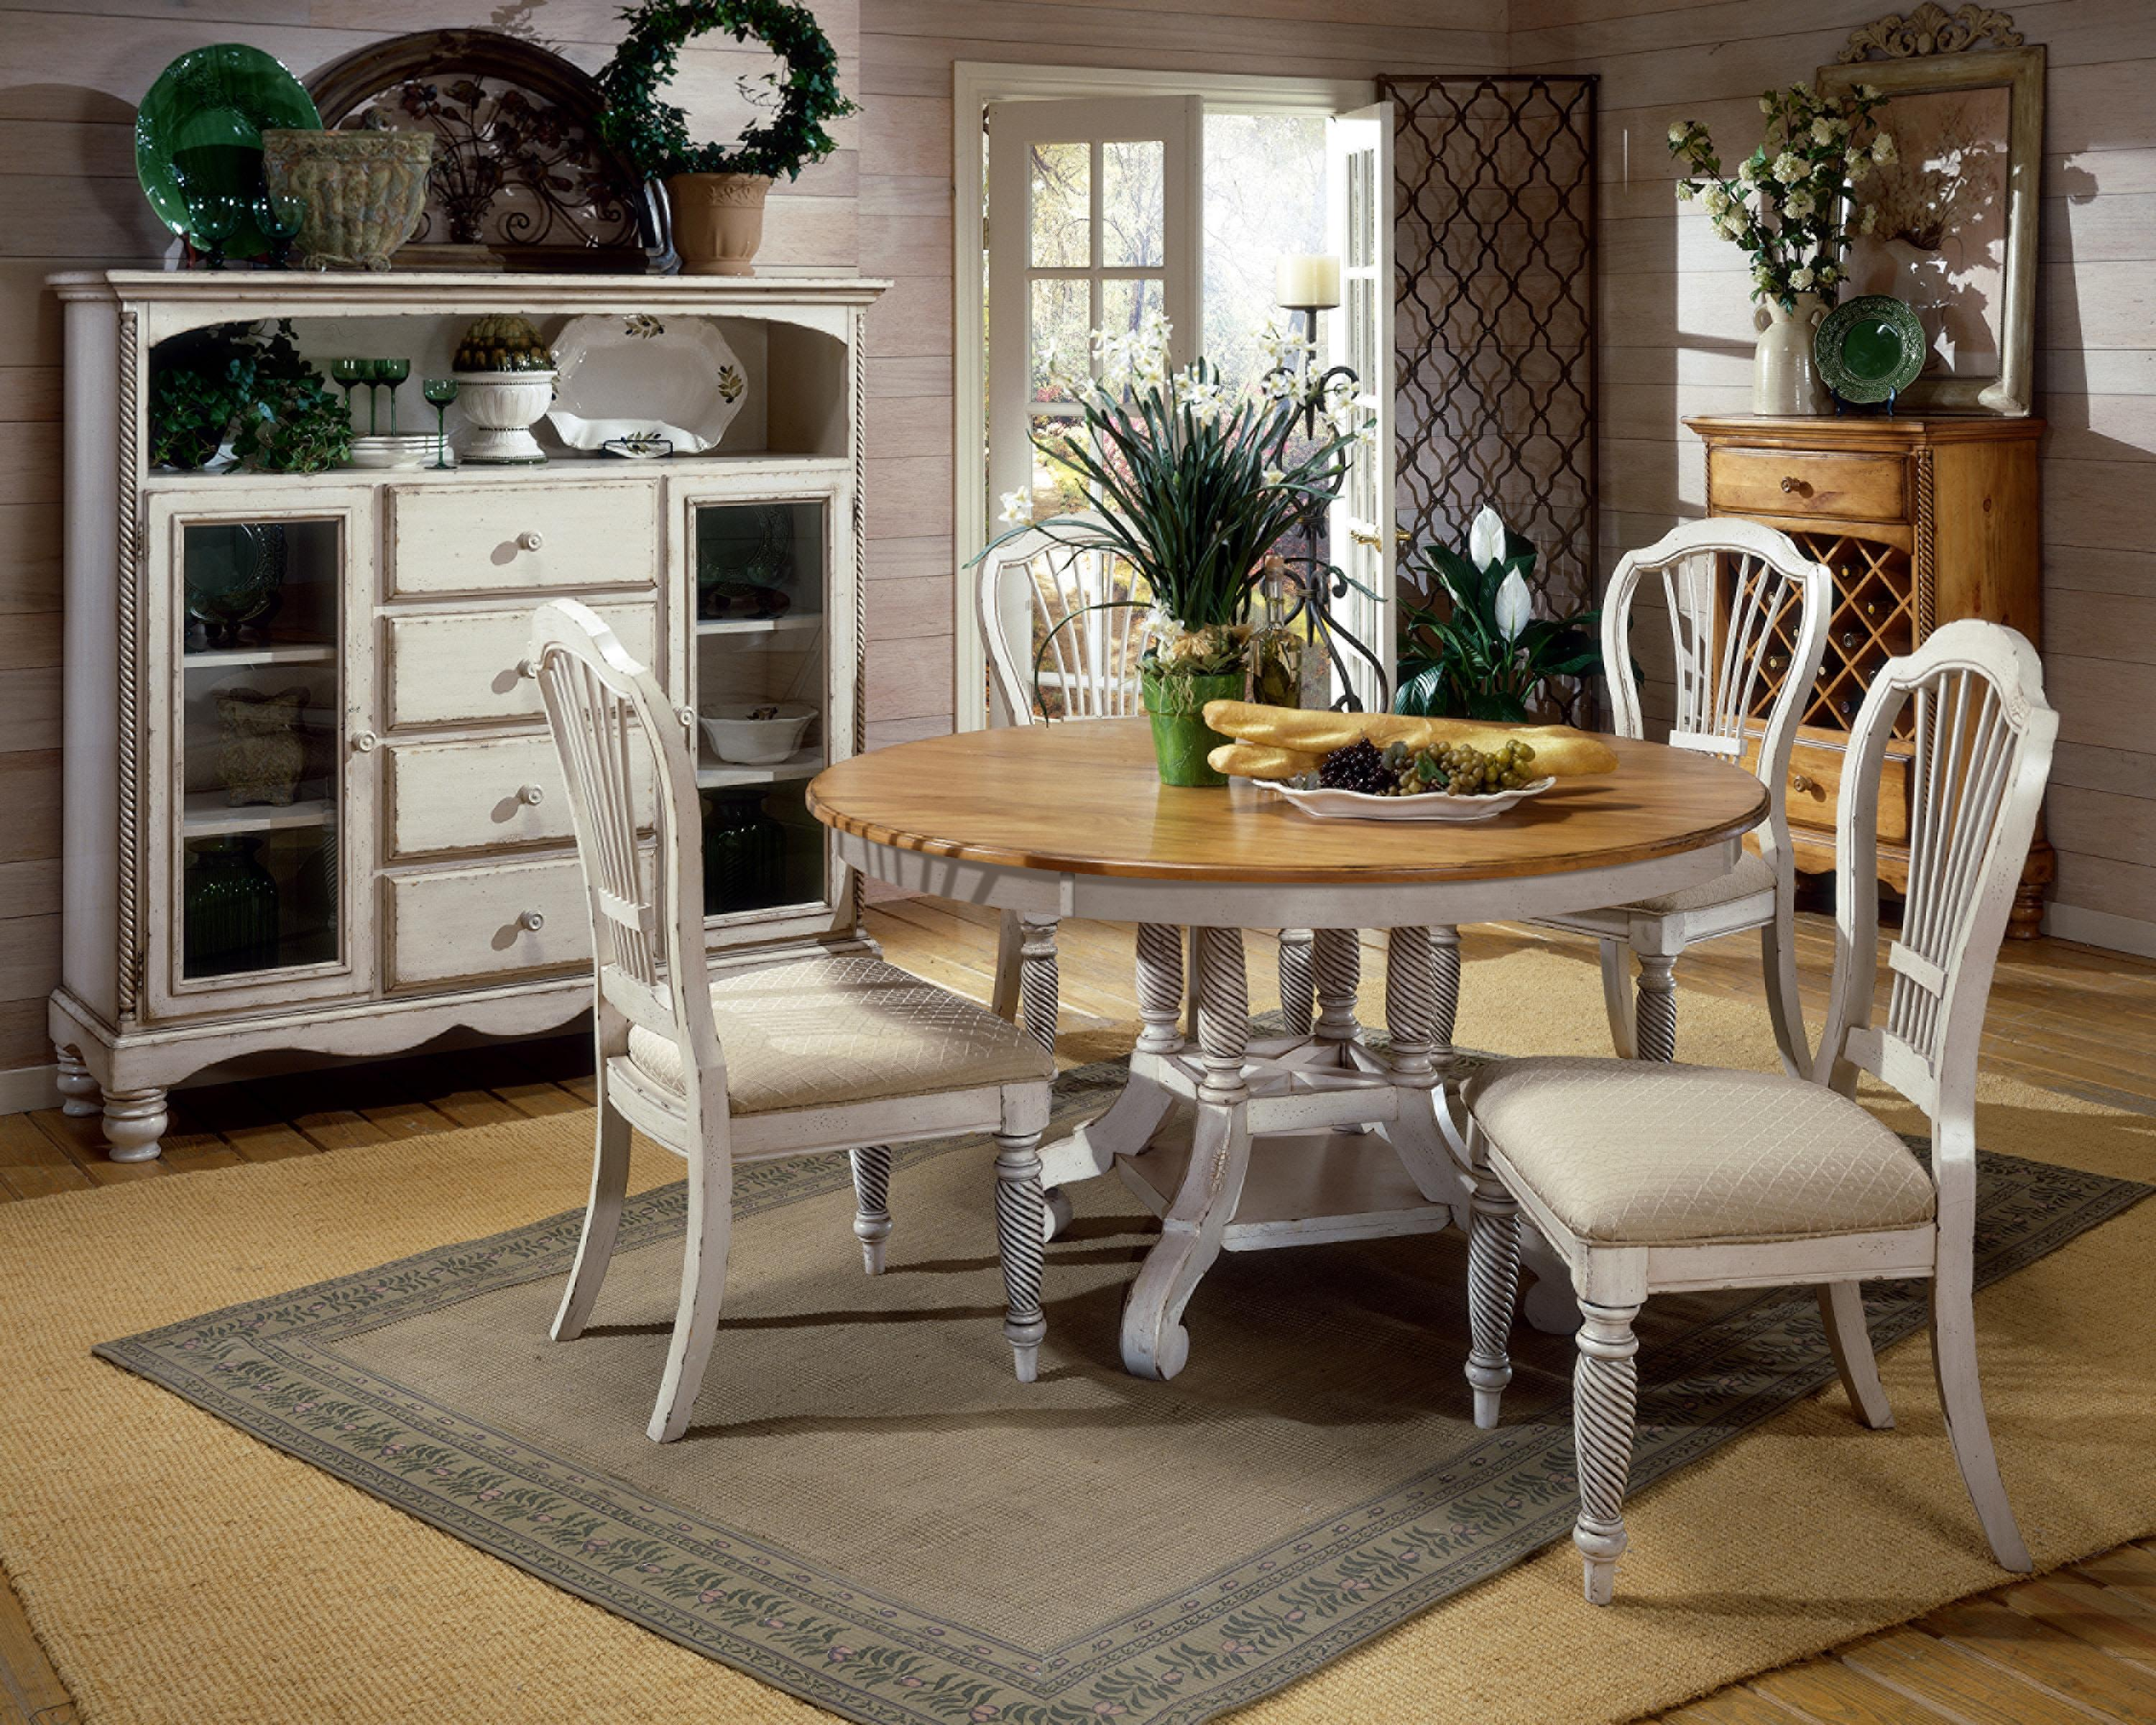 Round White Kitchen Table With Four Chairs Grey Carpet Cabinet With Drawers : round kitchen table set for 6 - pezcame.com